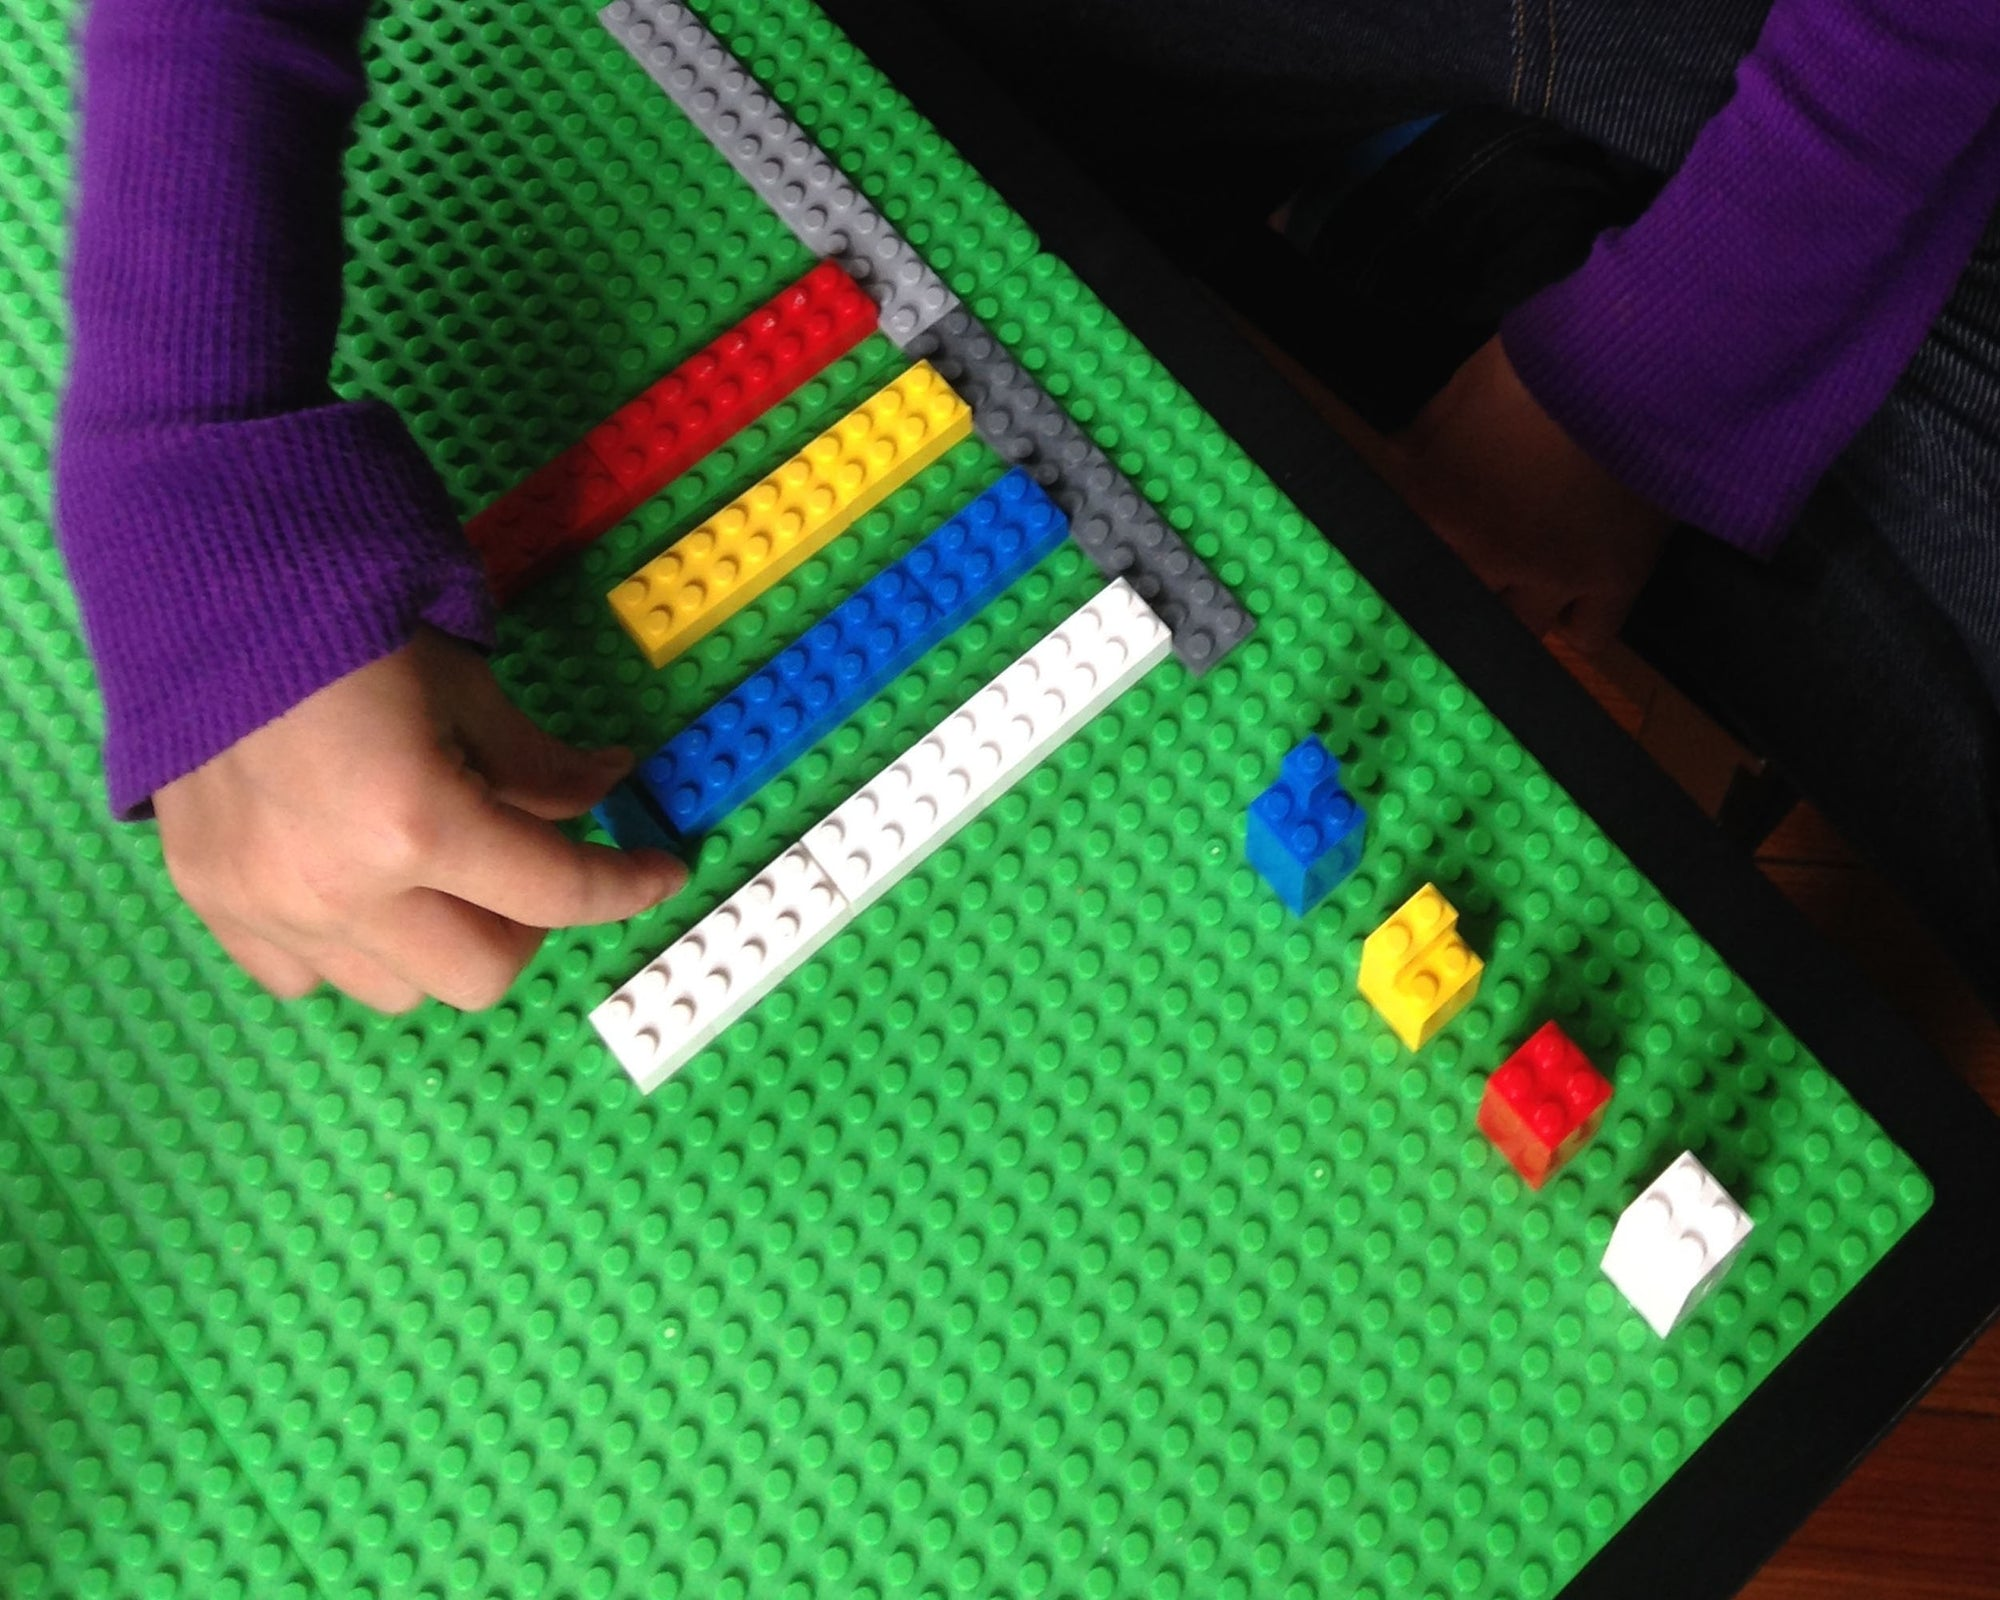 Teaching With Building Blocks - Lesson 2: Graphing